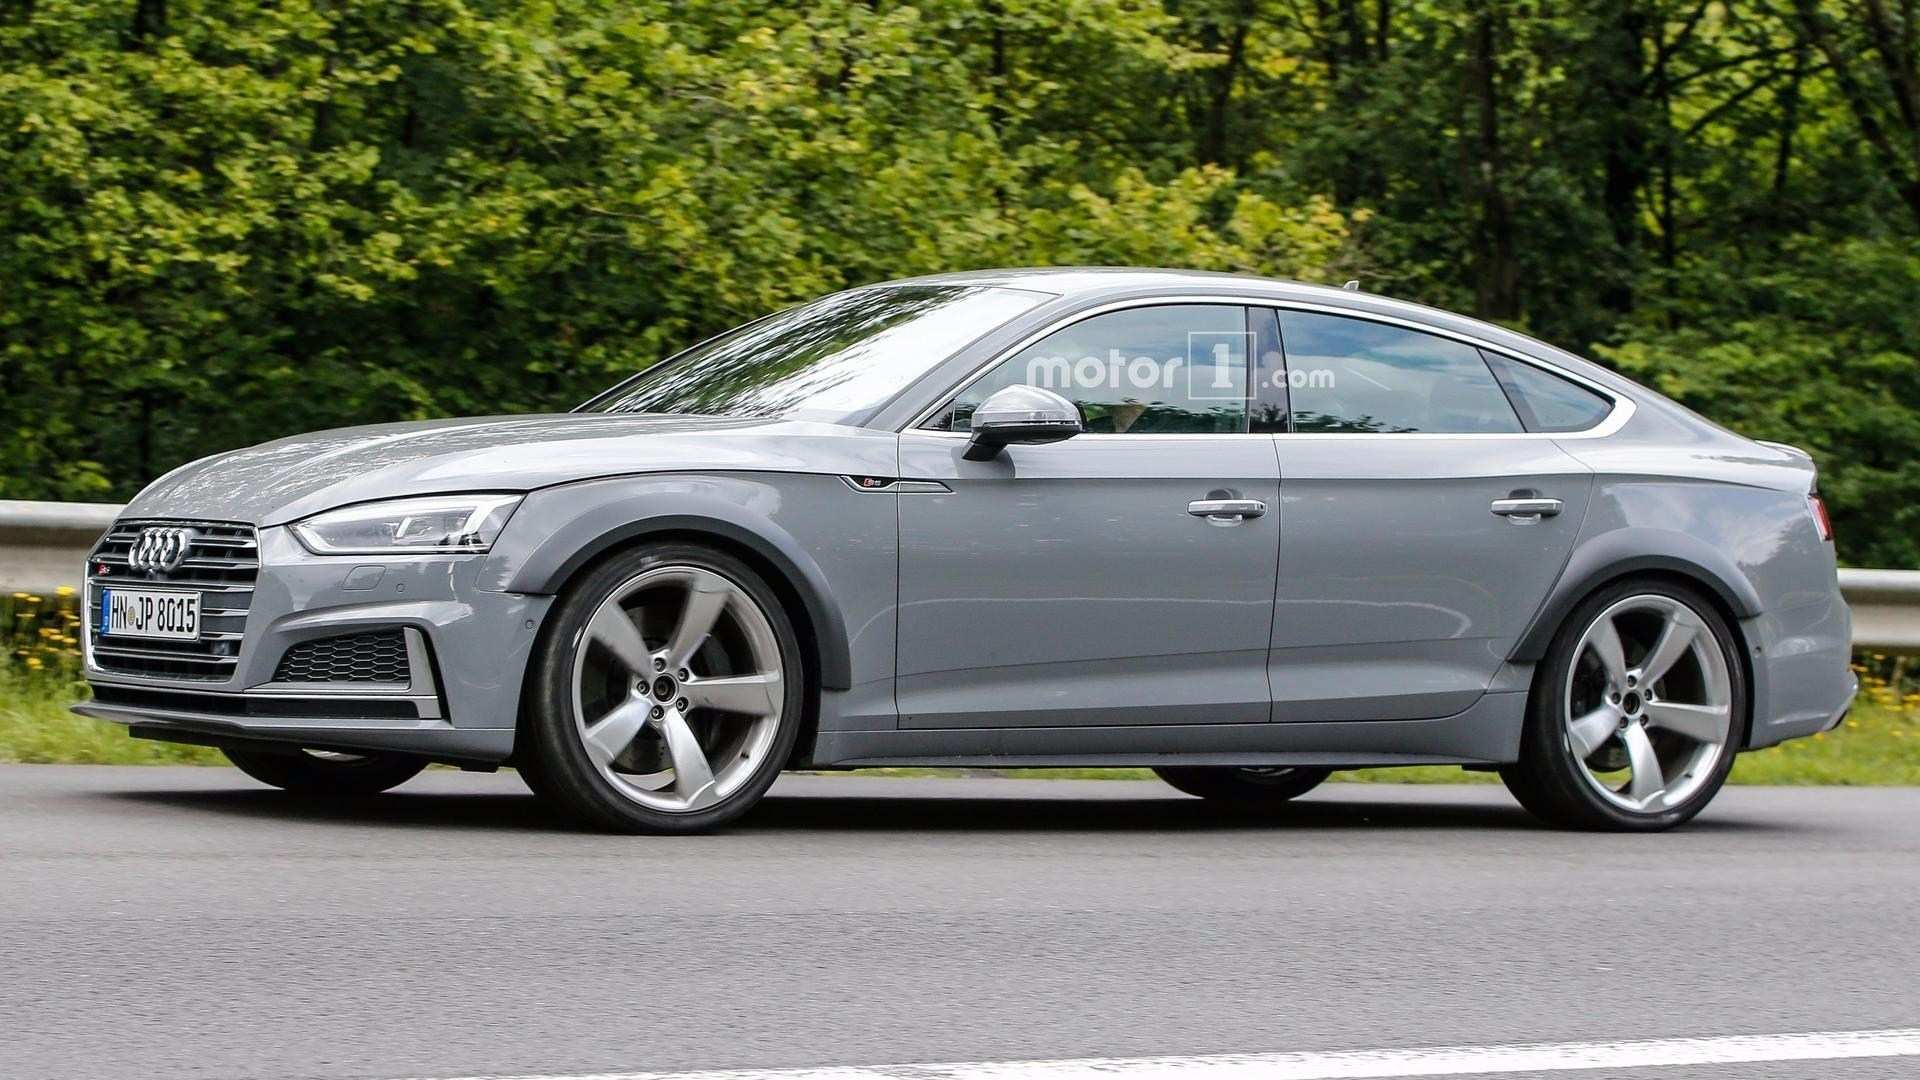 77 The Audi S52019 Spesification